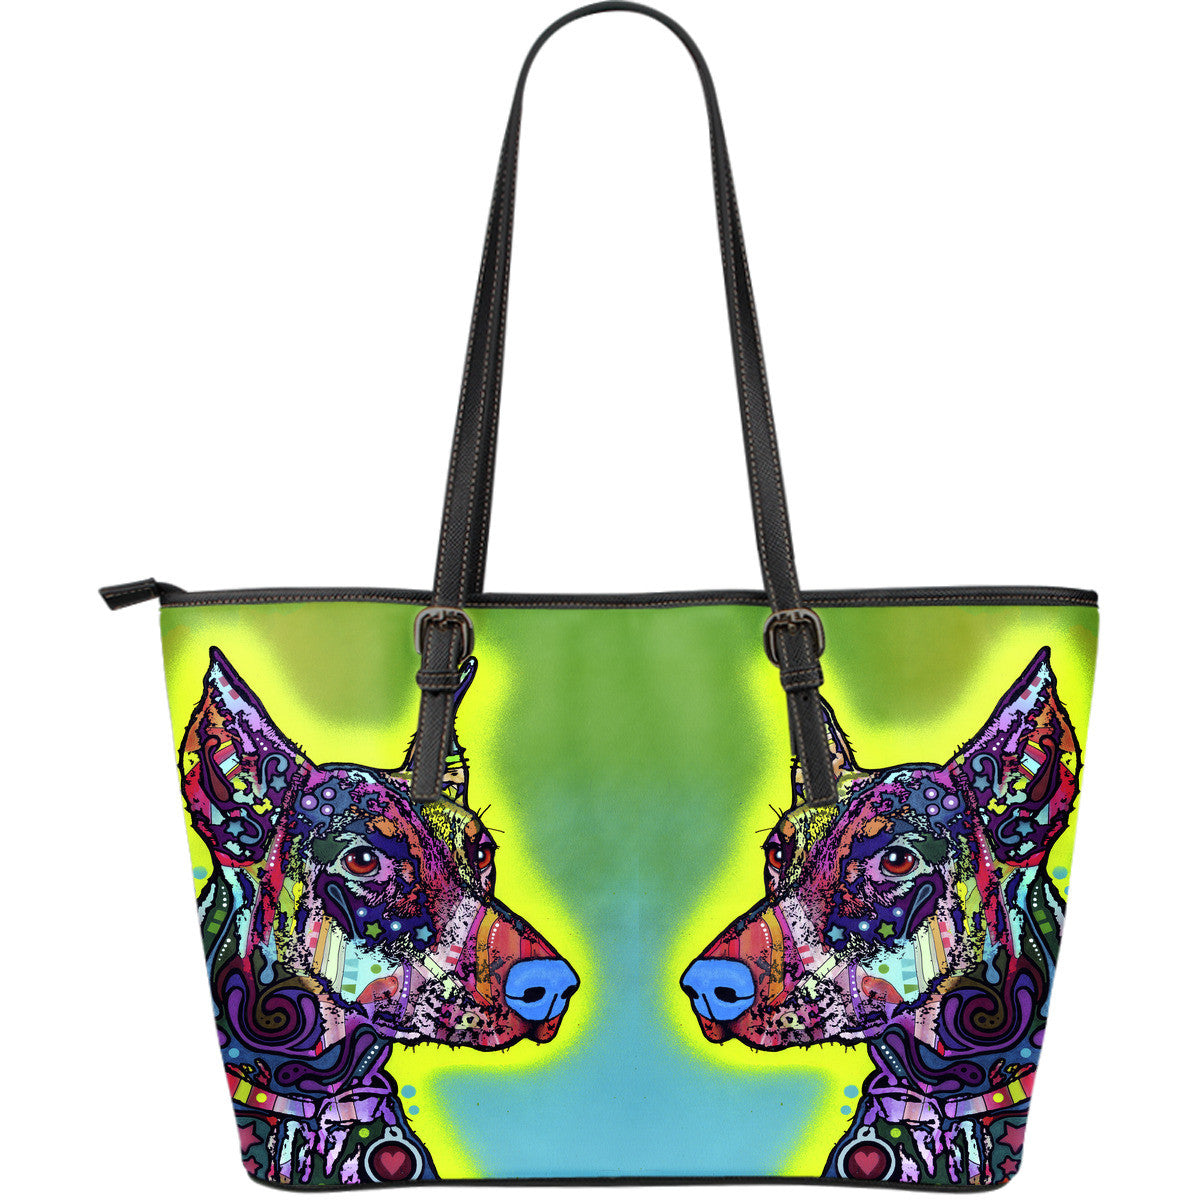 Doberman Leather Totes (Large)